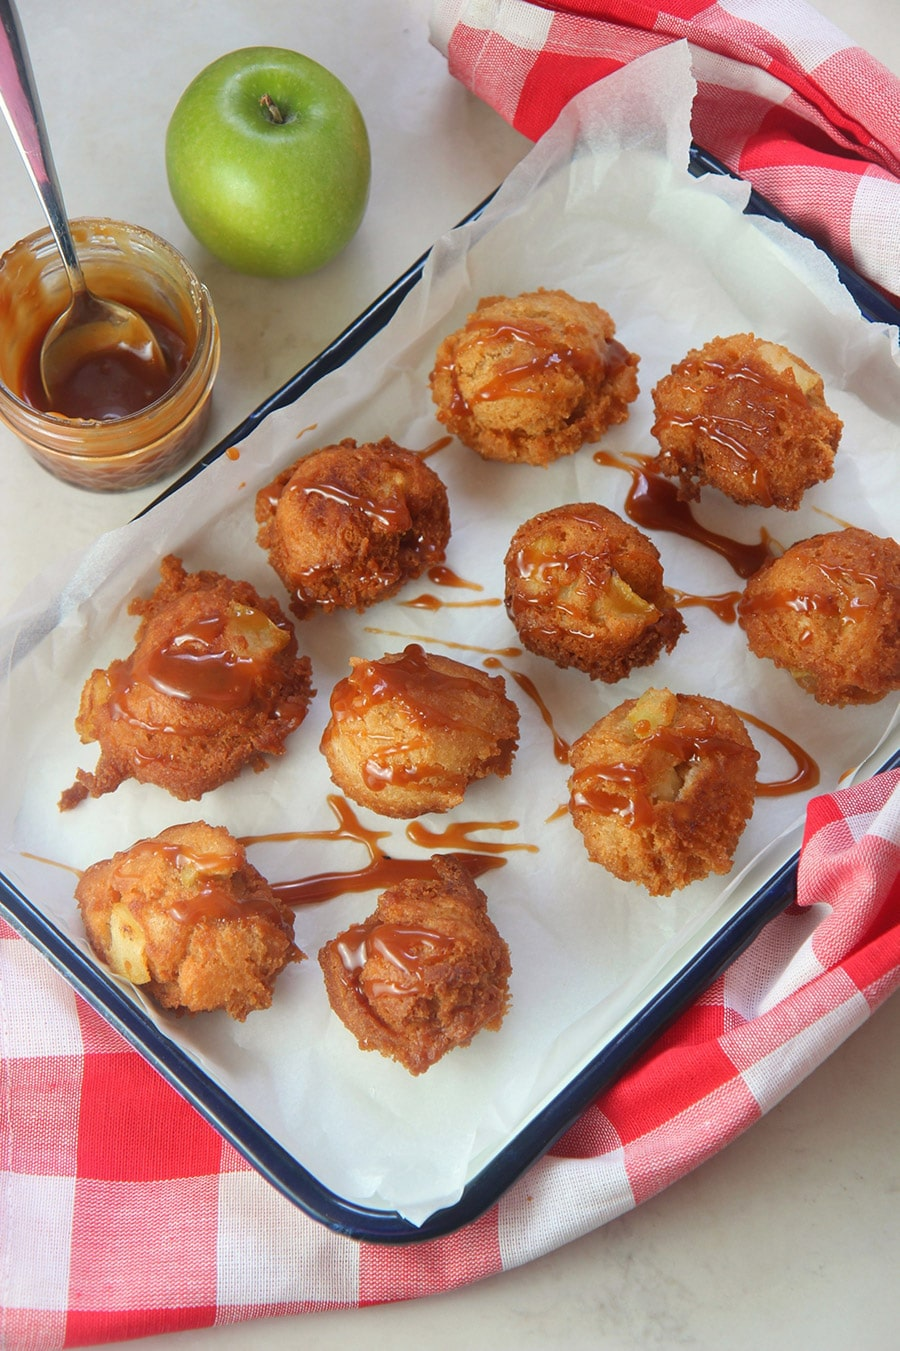 ten fried apple fritters with caramel sauce on top. A small jar of caramel on the side, a green apple, and a red and white towel..